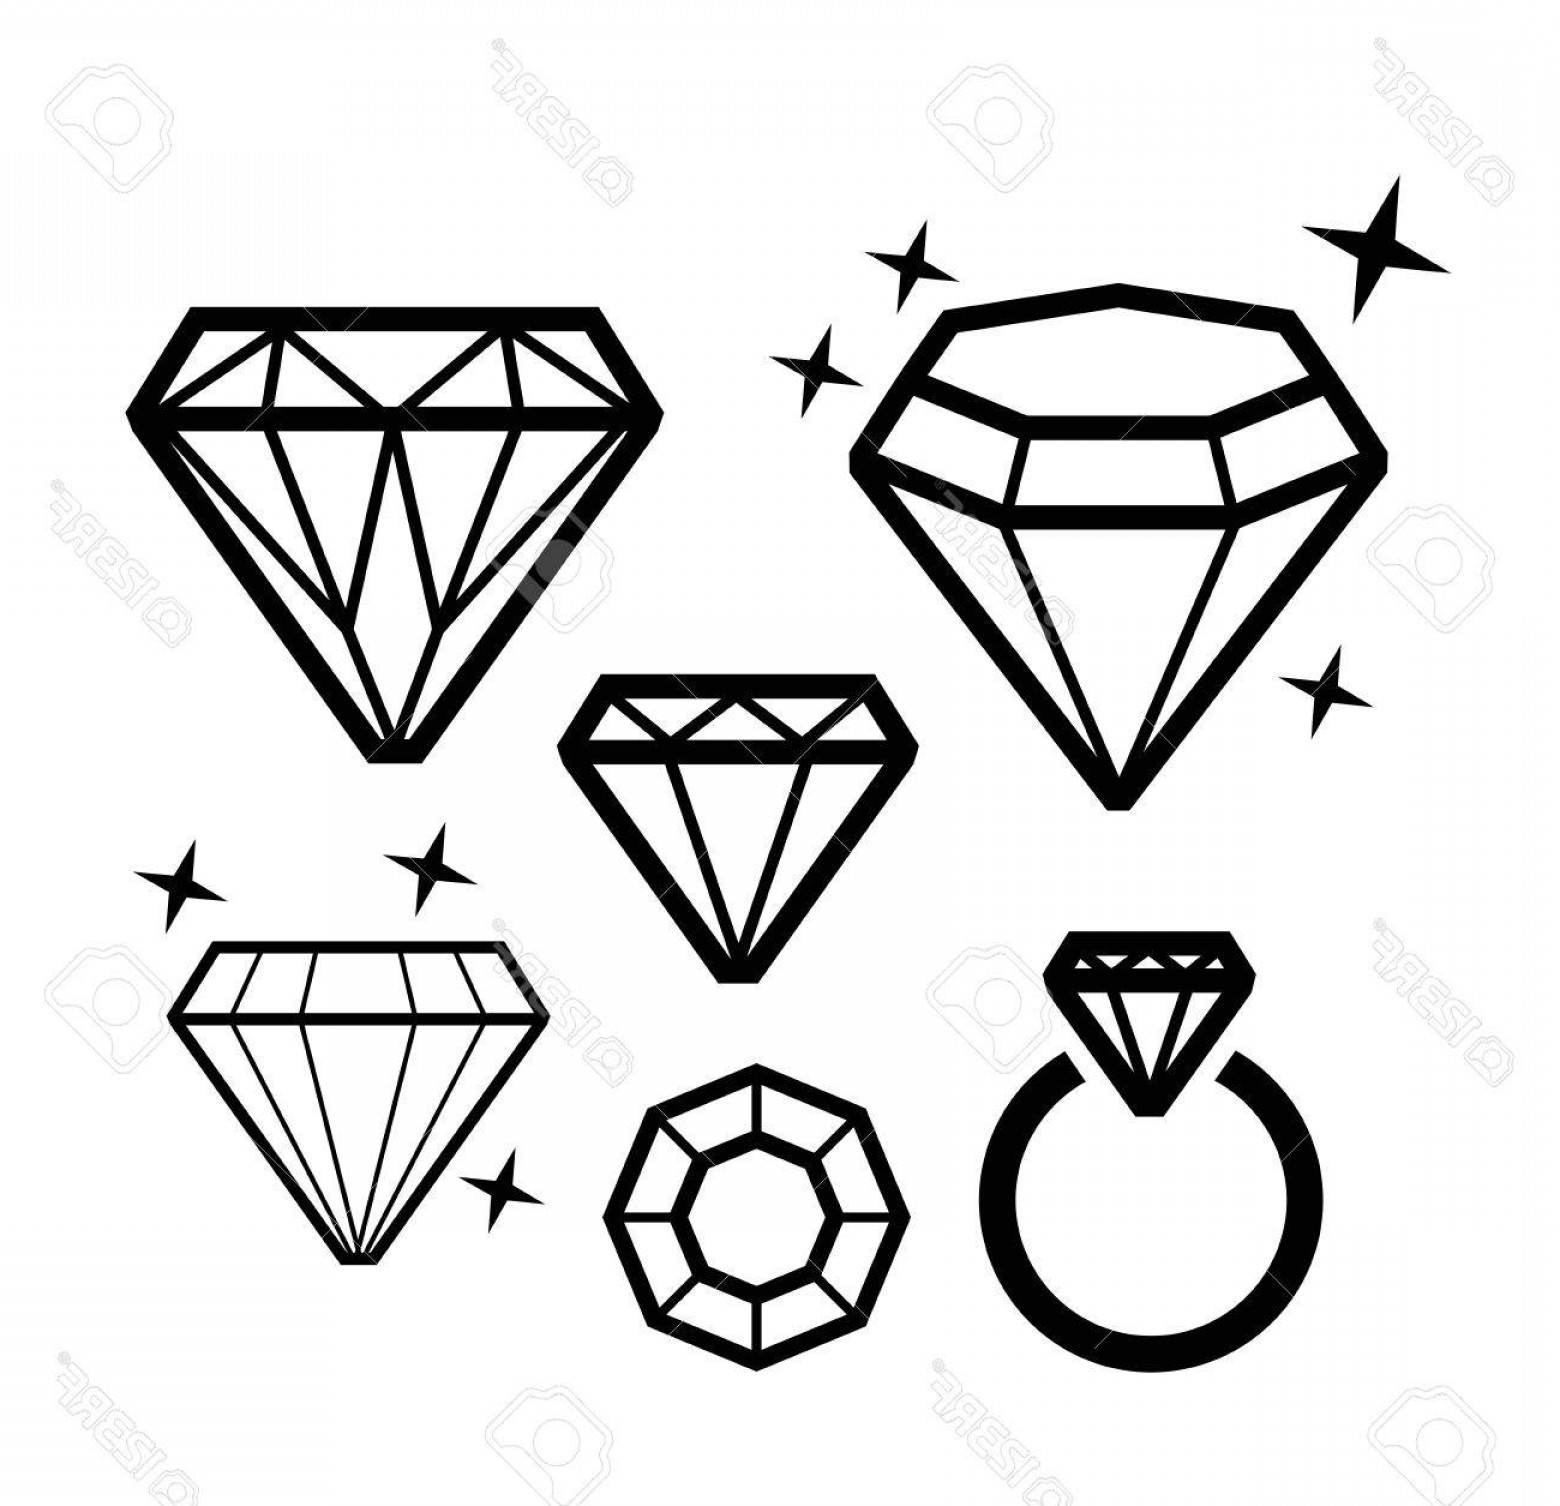 Black Diamond Vector Clip Art: Photostock Vector Vector Black Diamond Icons On White Background